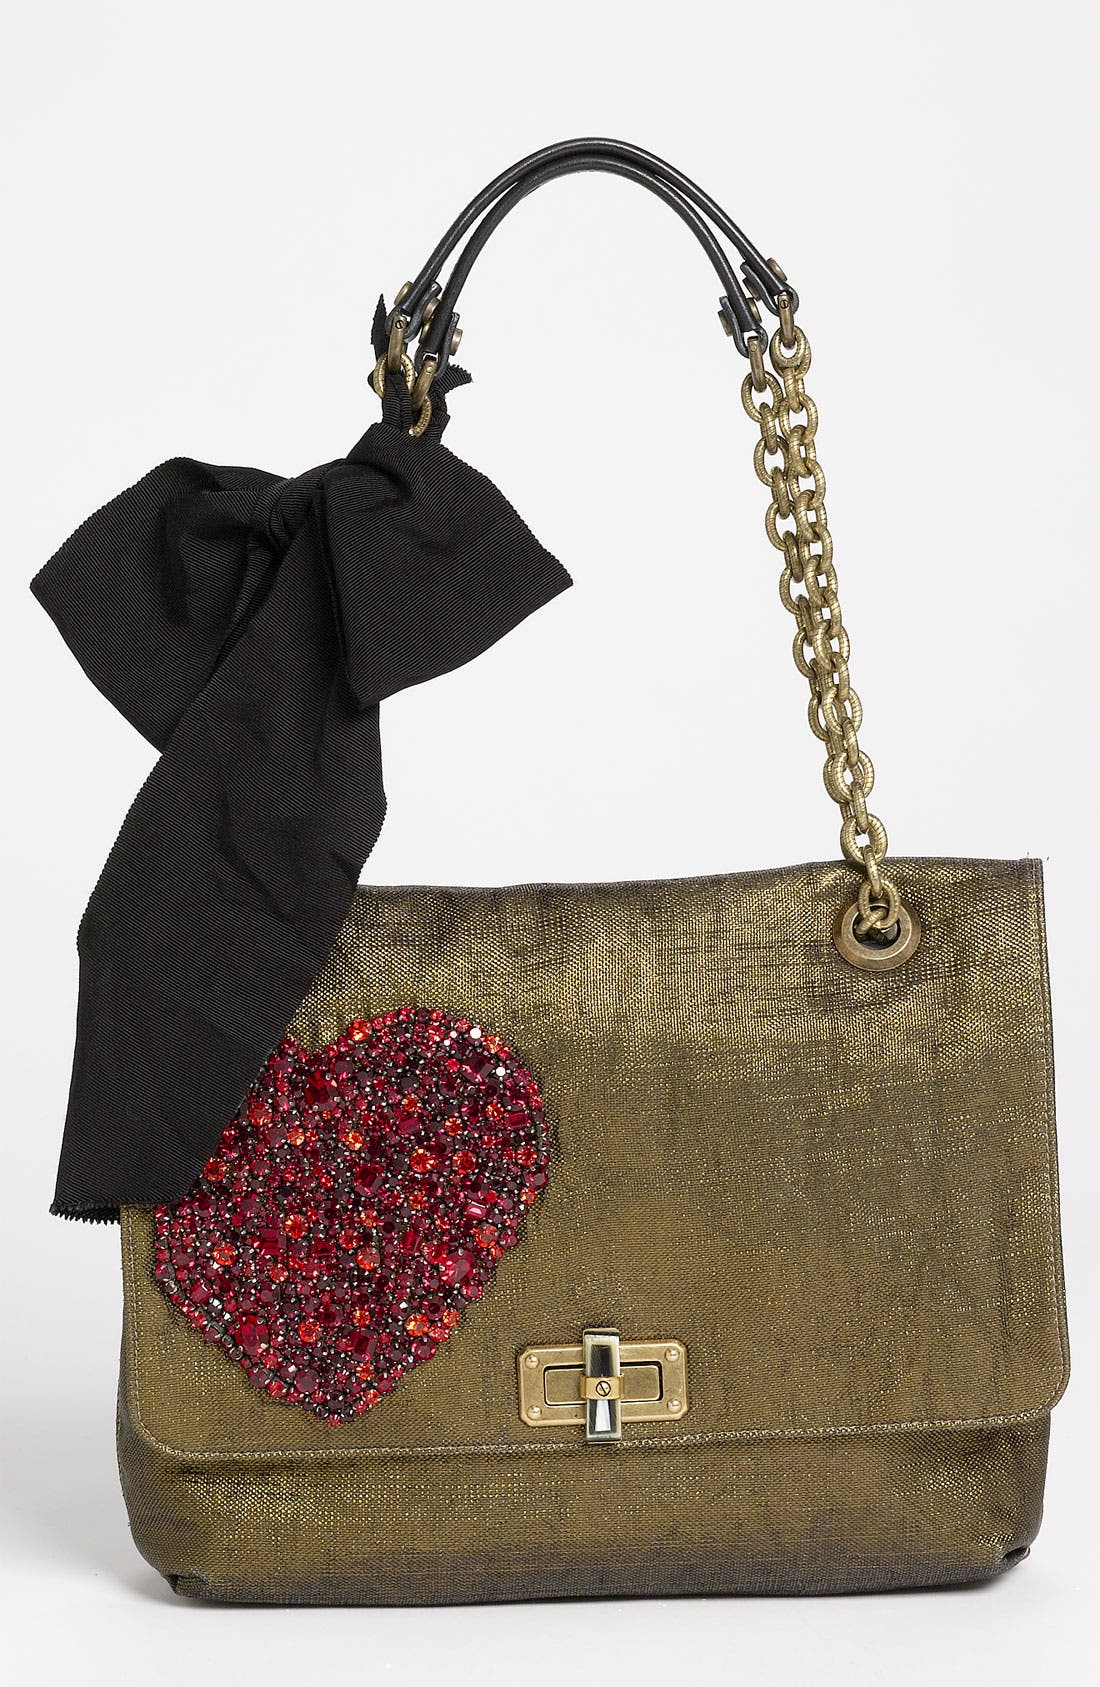 Alternate Image 1 Selected - Lanvin 'Happy Birthday - Heart' Shoulder Bag